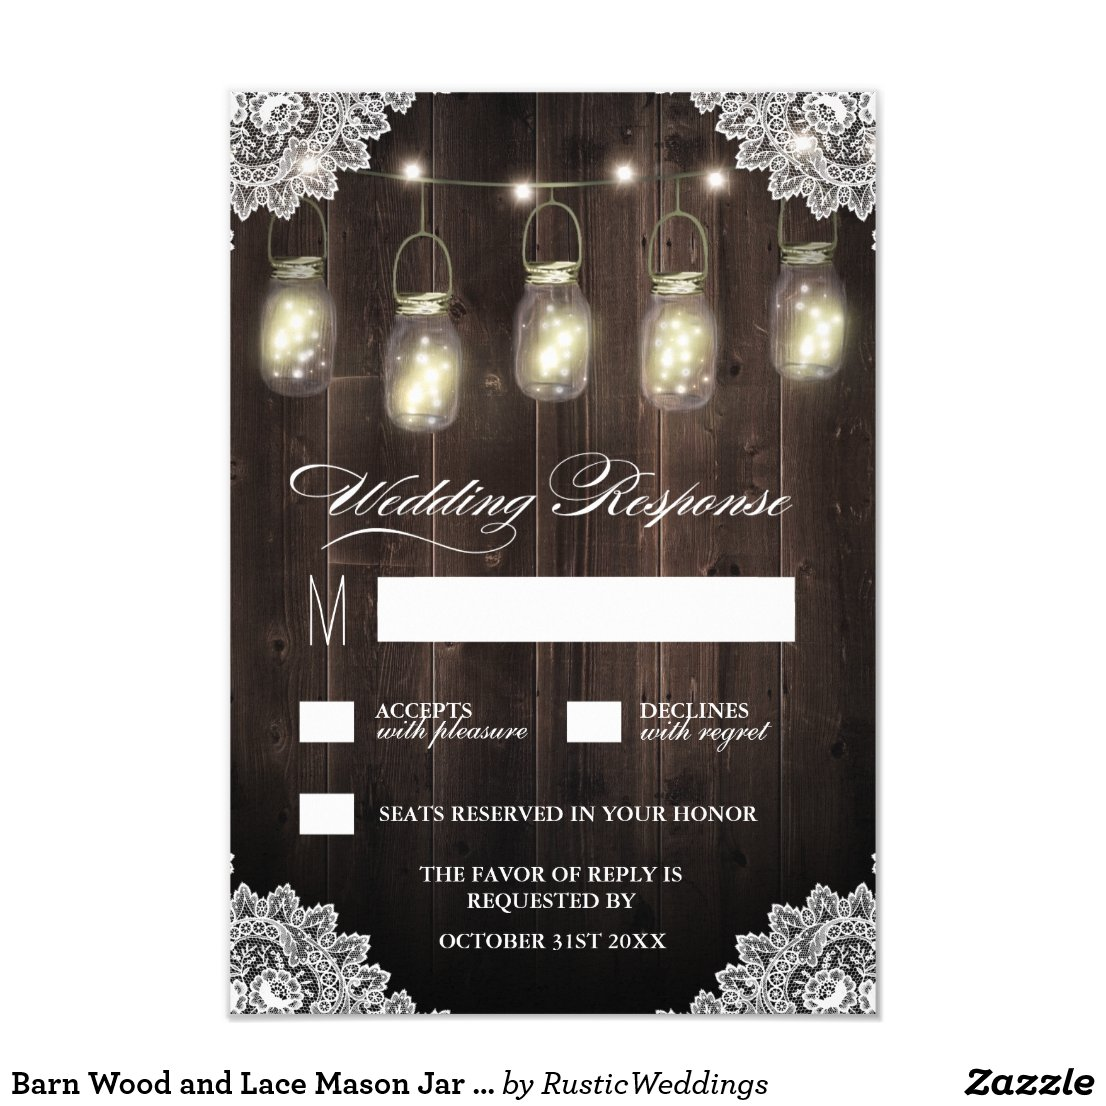 Barn Wood and Lace Mason Jar Wedding RSVP Cards